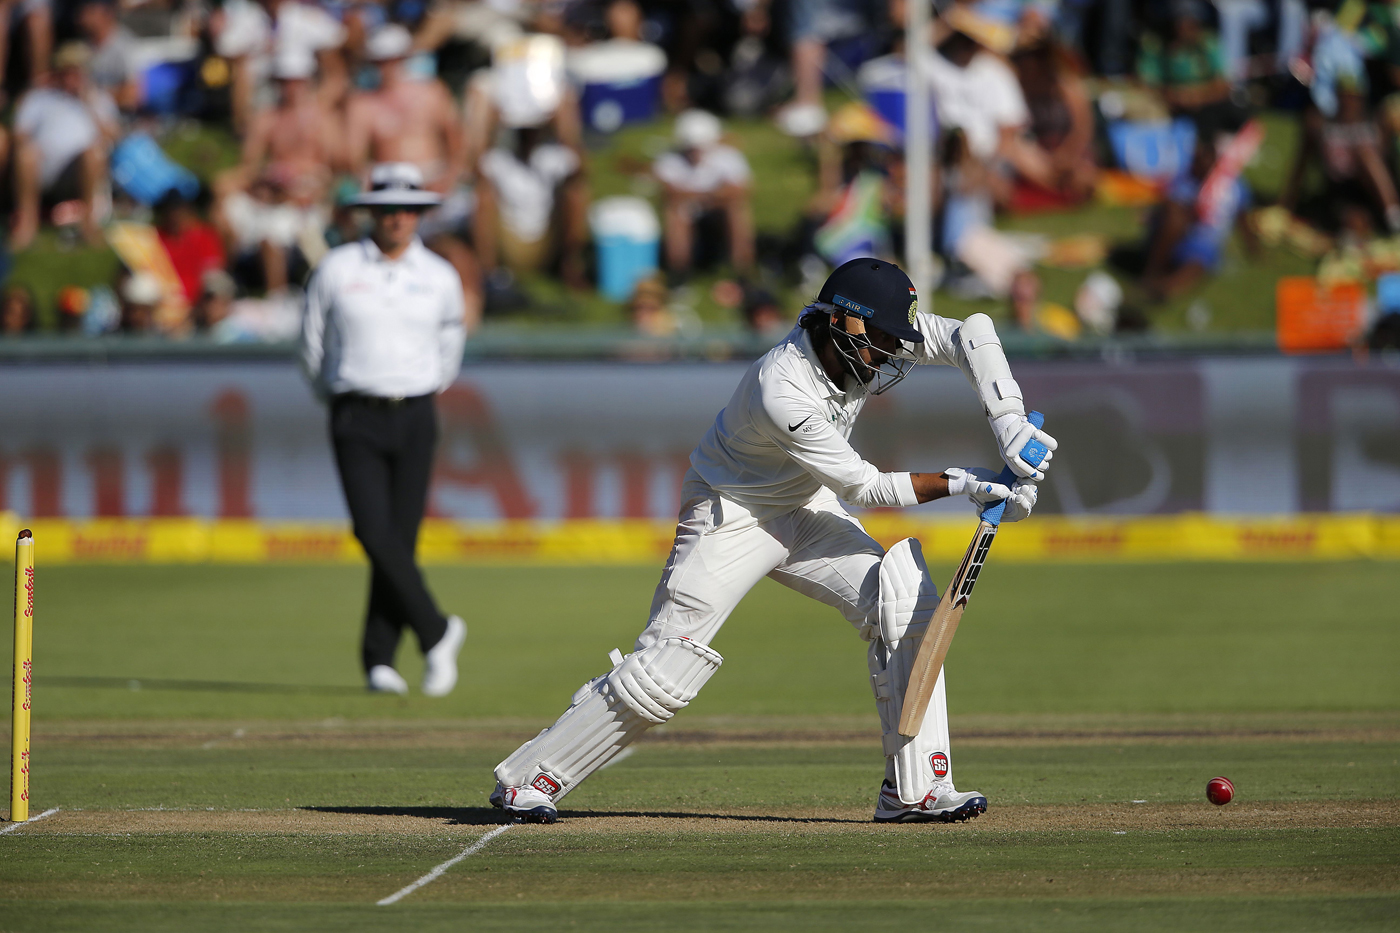 Before this England series, Vijay's average in England, South Africa and Australia was 38.73 from 15 Tests with seven fifties and two hundreds